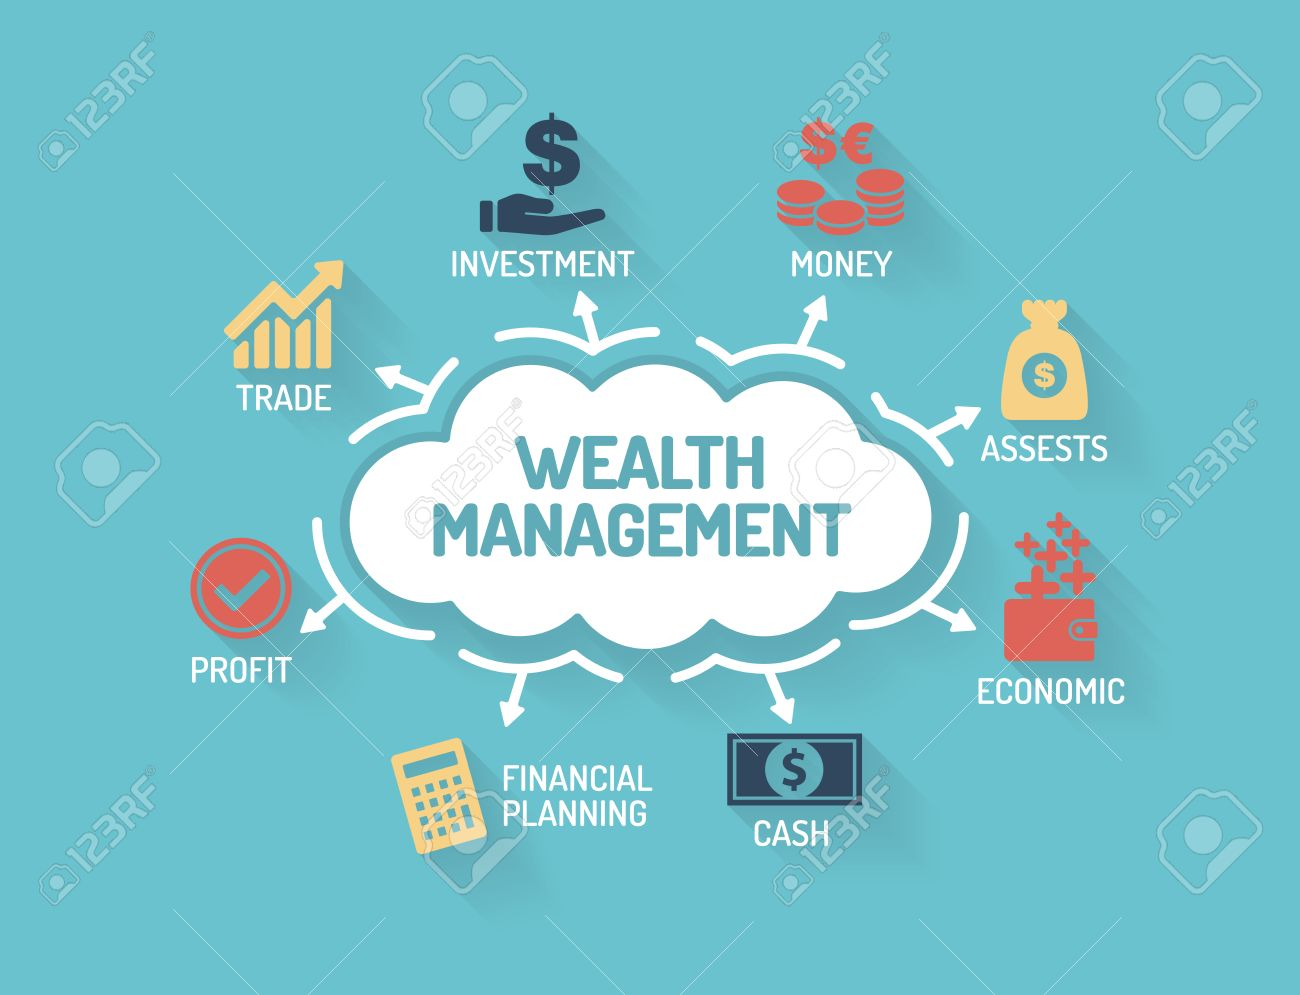 Wealth Management - Chart with keywords and icons - Flat Design - 57612439